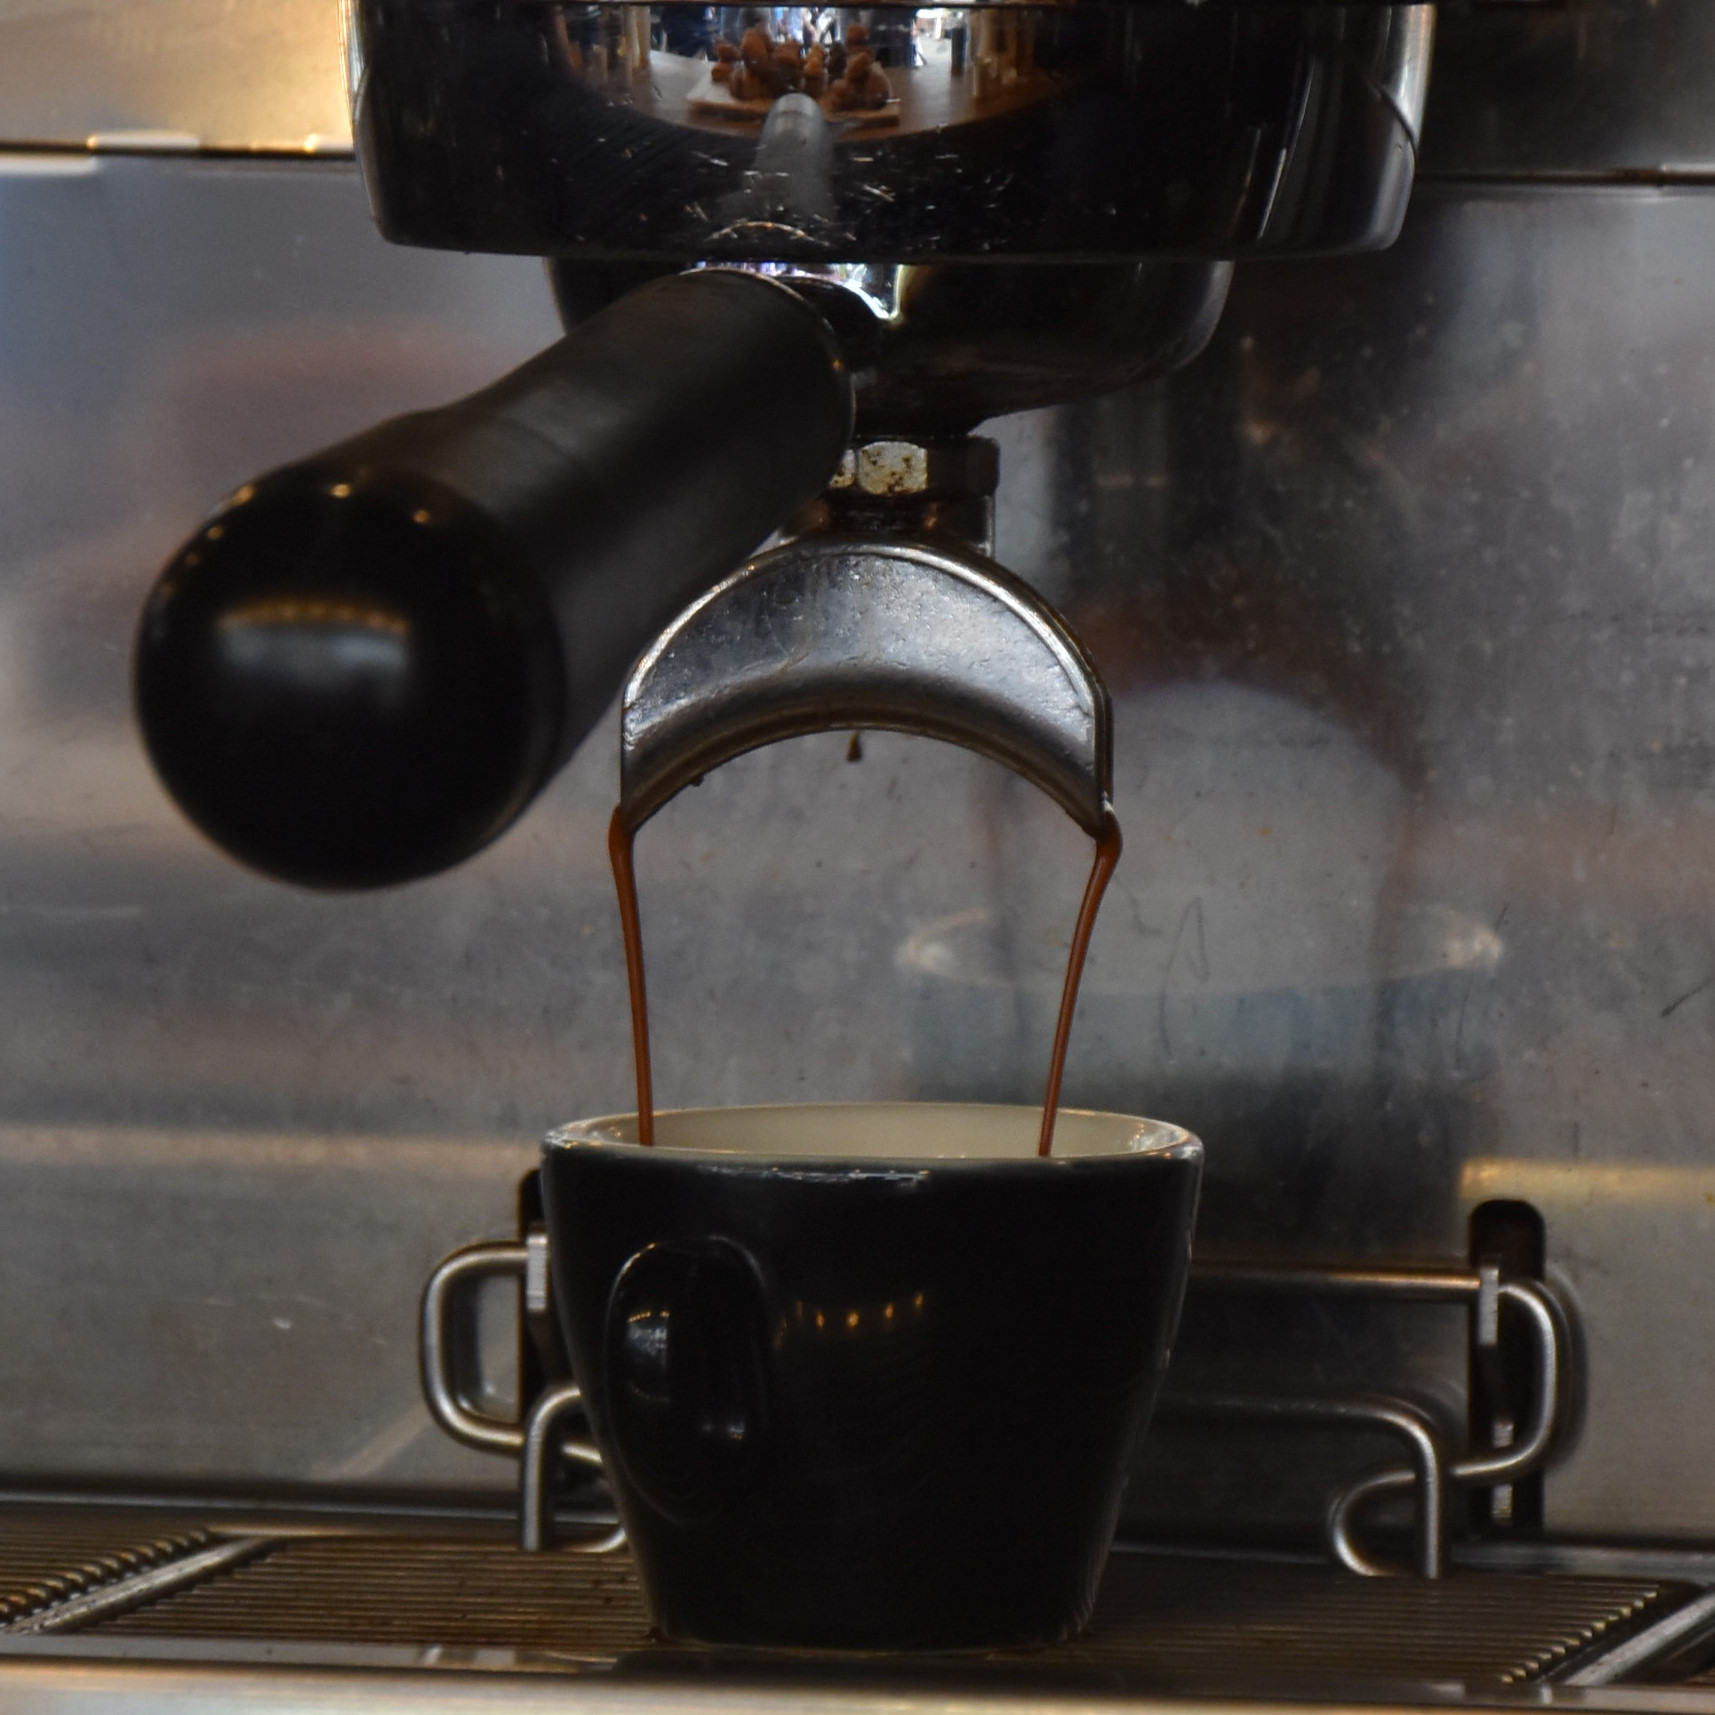 Watching espresso extract for a Victoria Arduino Black Eagle espresso machine in the Browns of Brockley mobile coffee van at Lord's cricket ground.